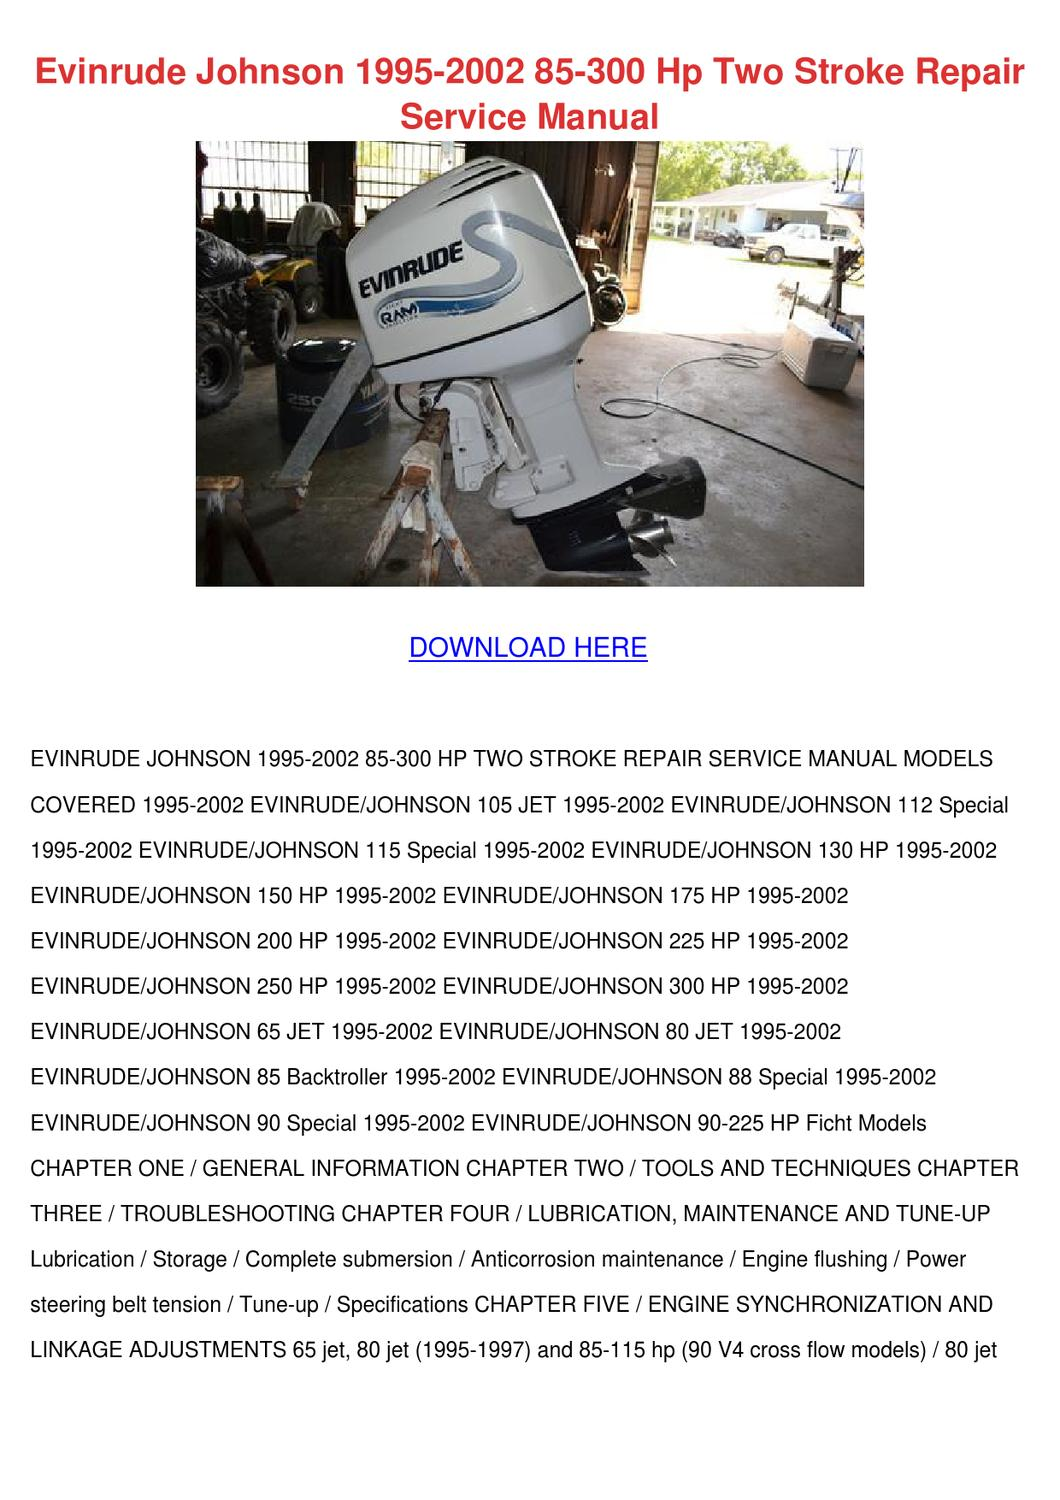 2002 evinrude 90 ficht wiring diagram 49cc mini chopper johnson 1995 85 300 hp two stro by